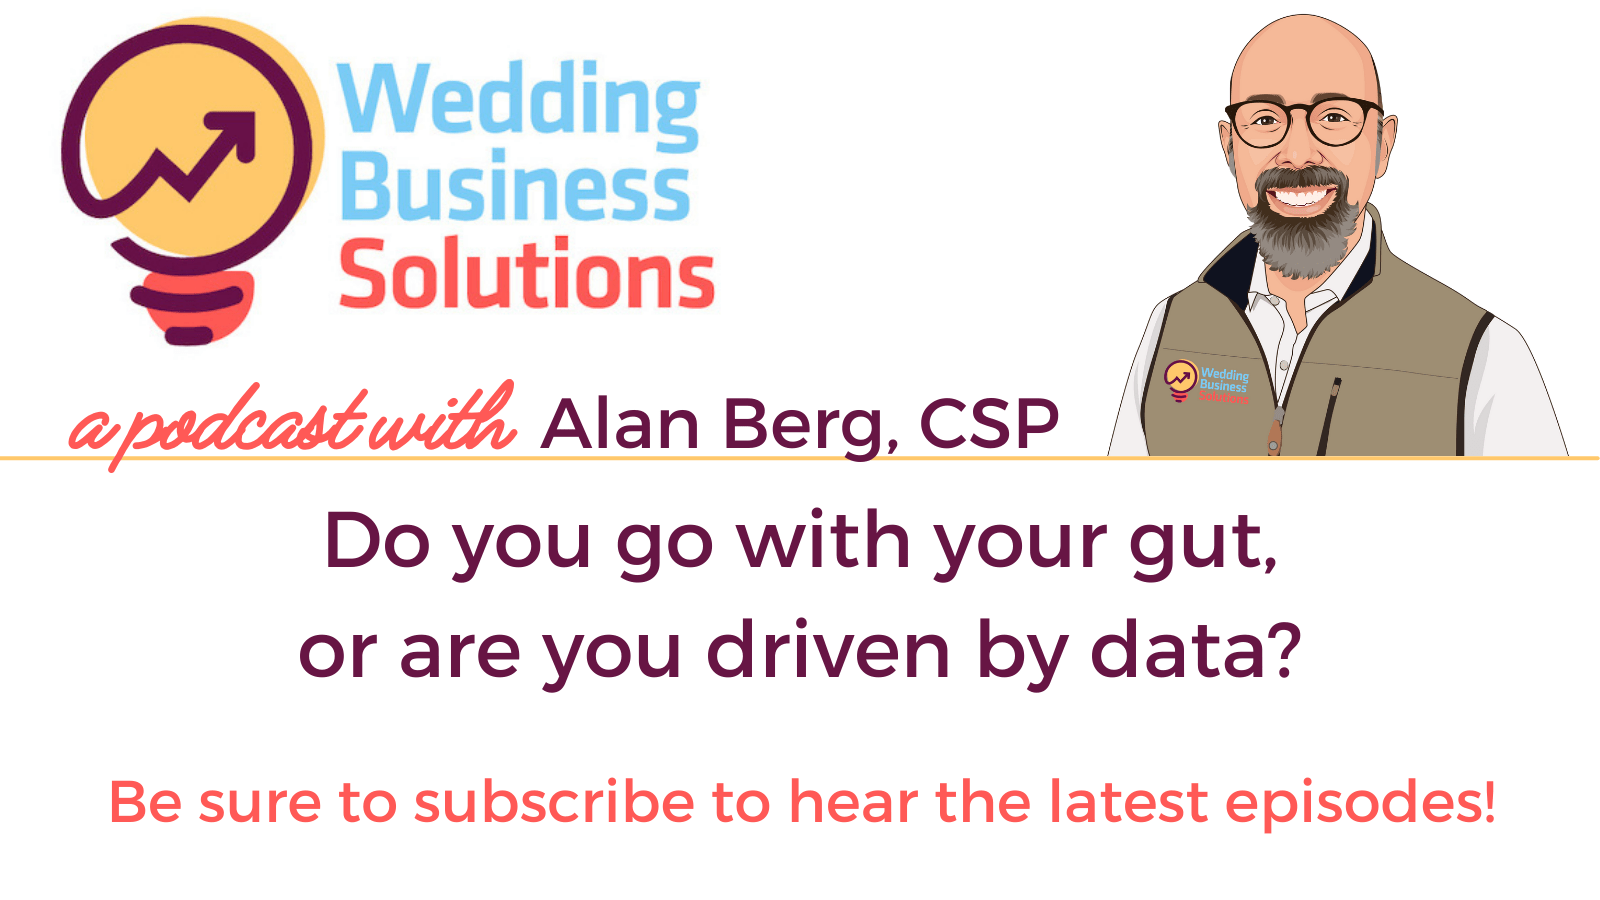 Wedding Business Solutions Podcast with Alan Berg CSP - Do you go with your gut, or are you driven by data?